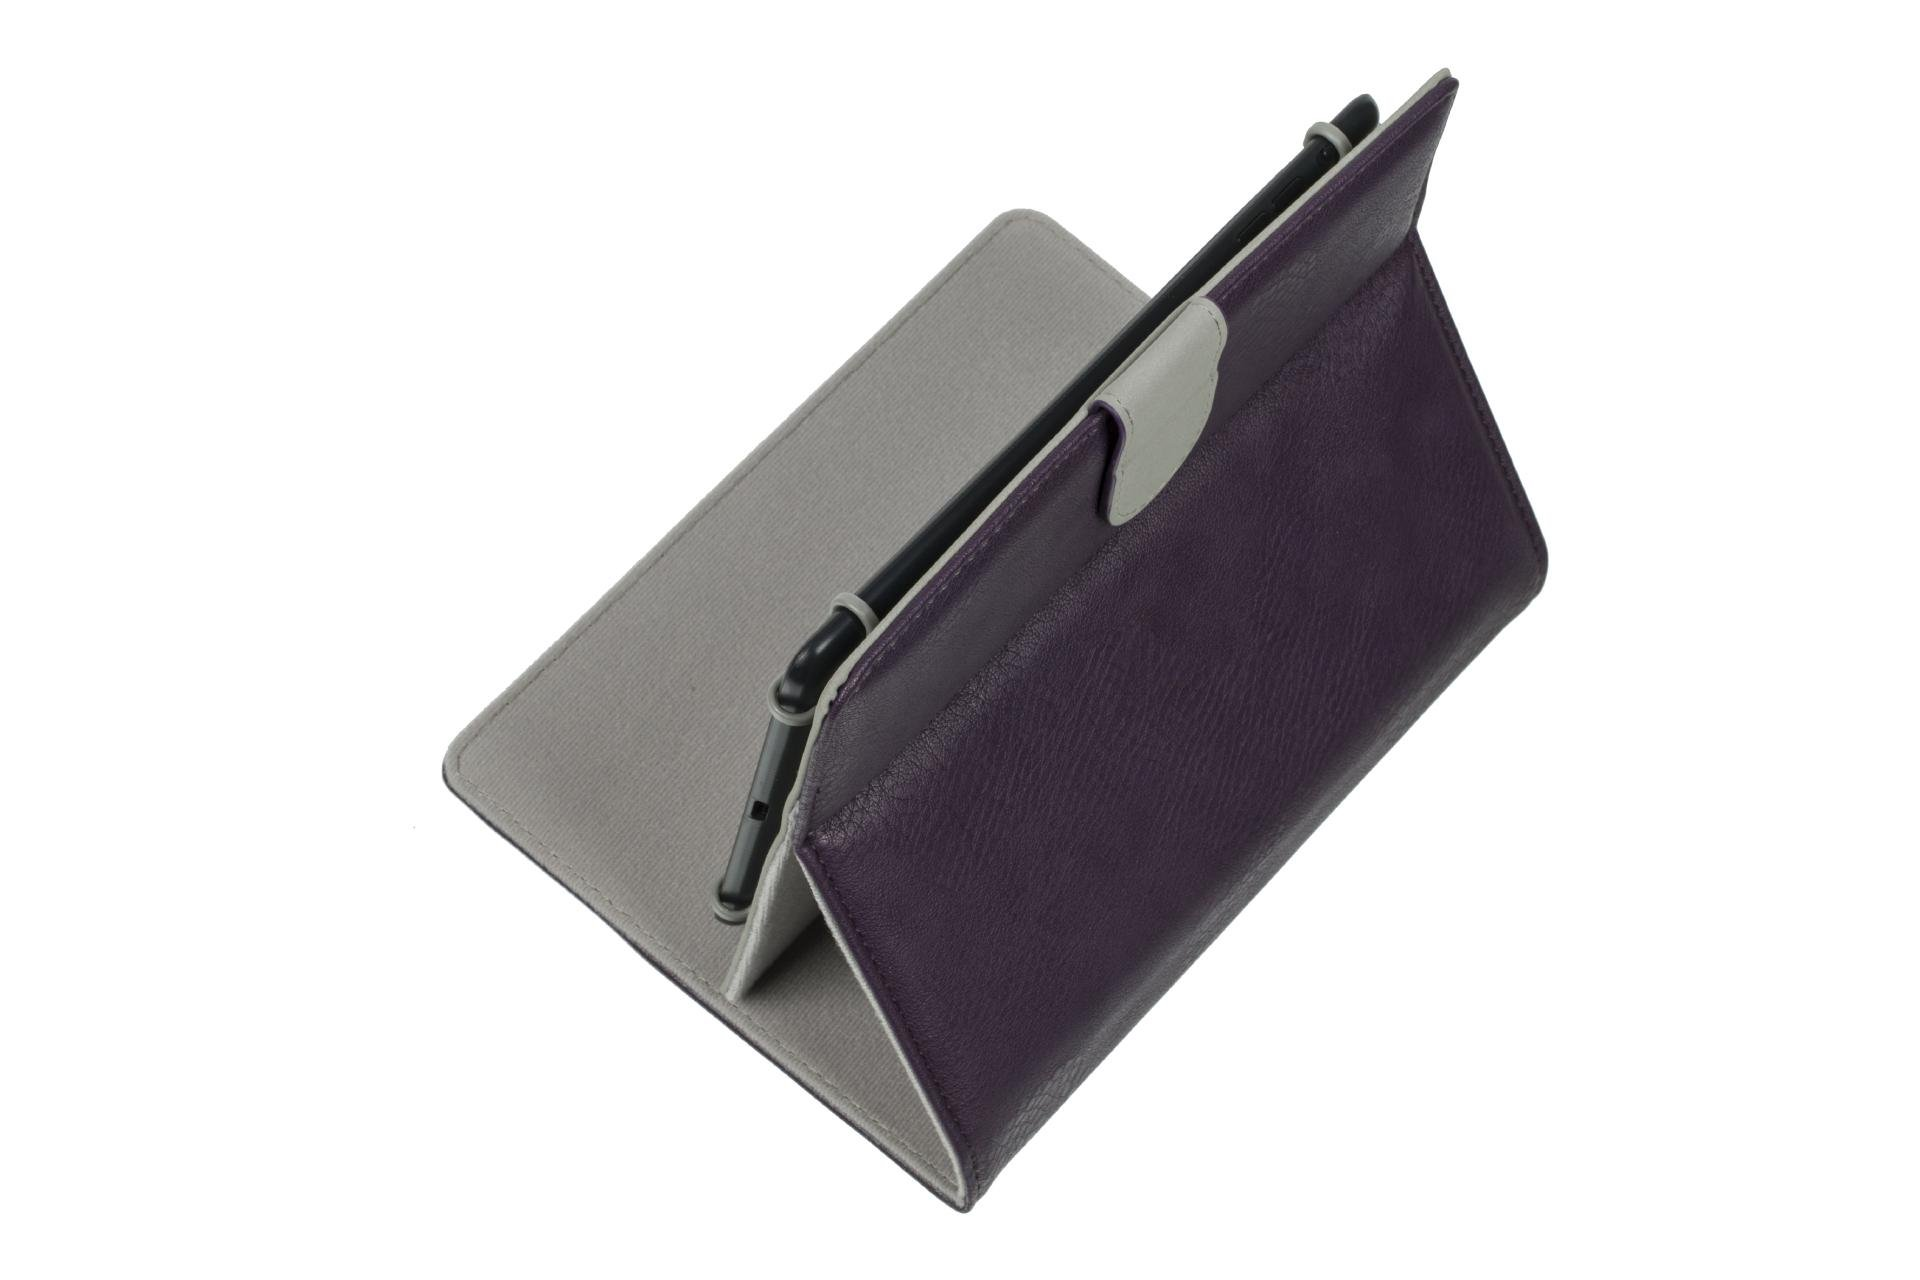 Rivacase 3014 Universal Tablet Cover Case, Stylish, Protective, Purple Color